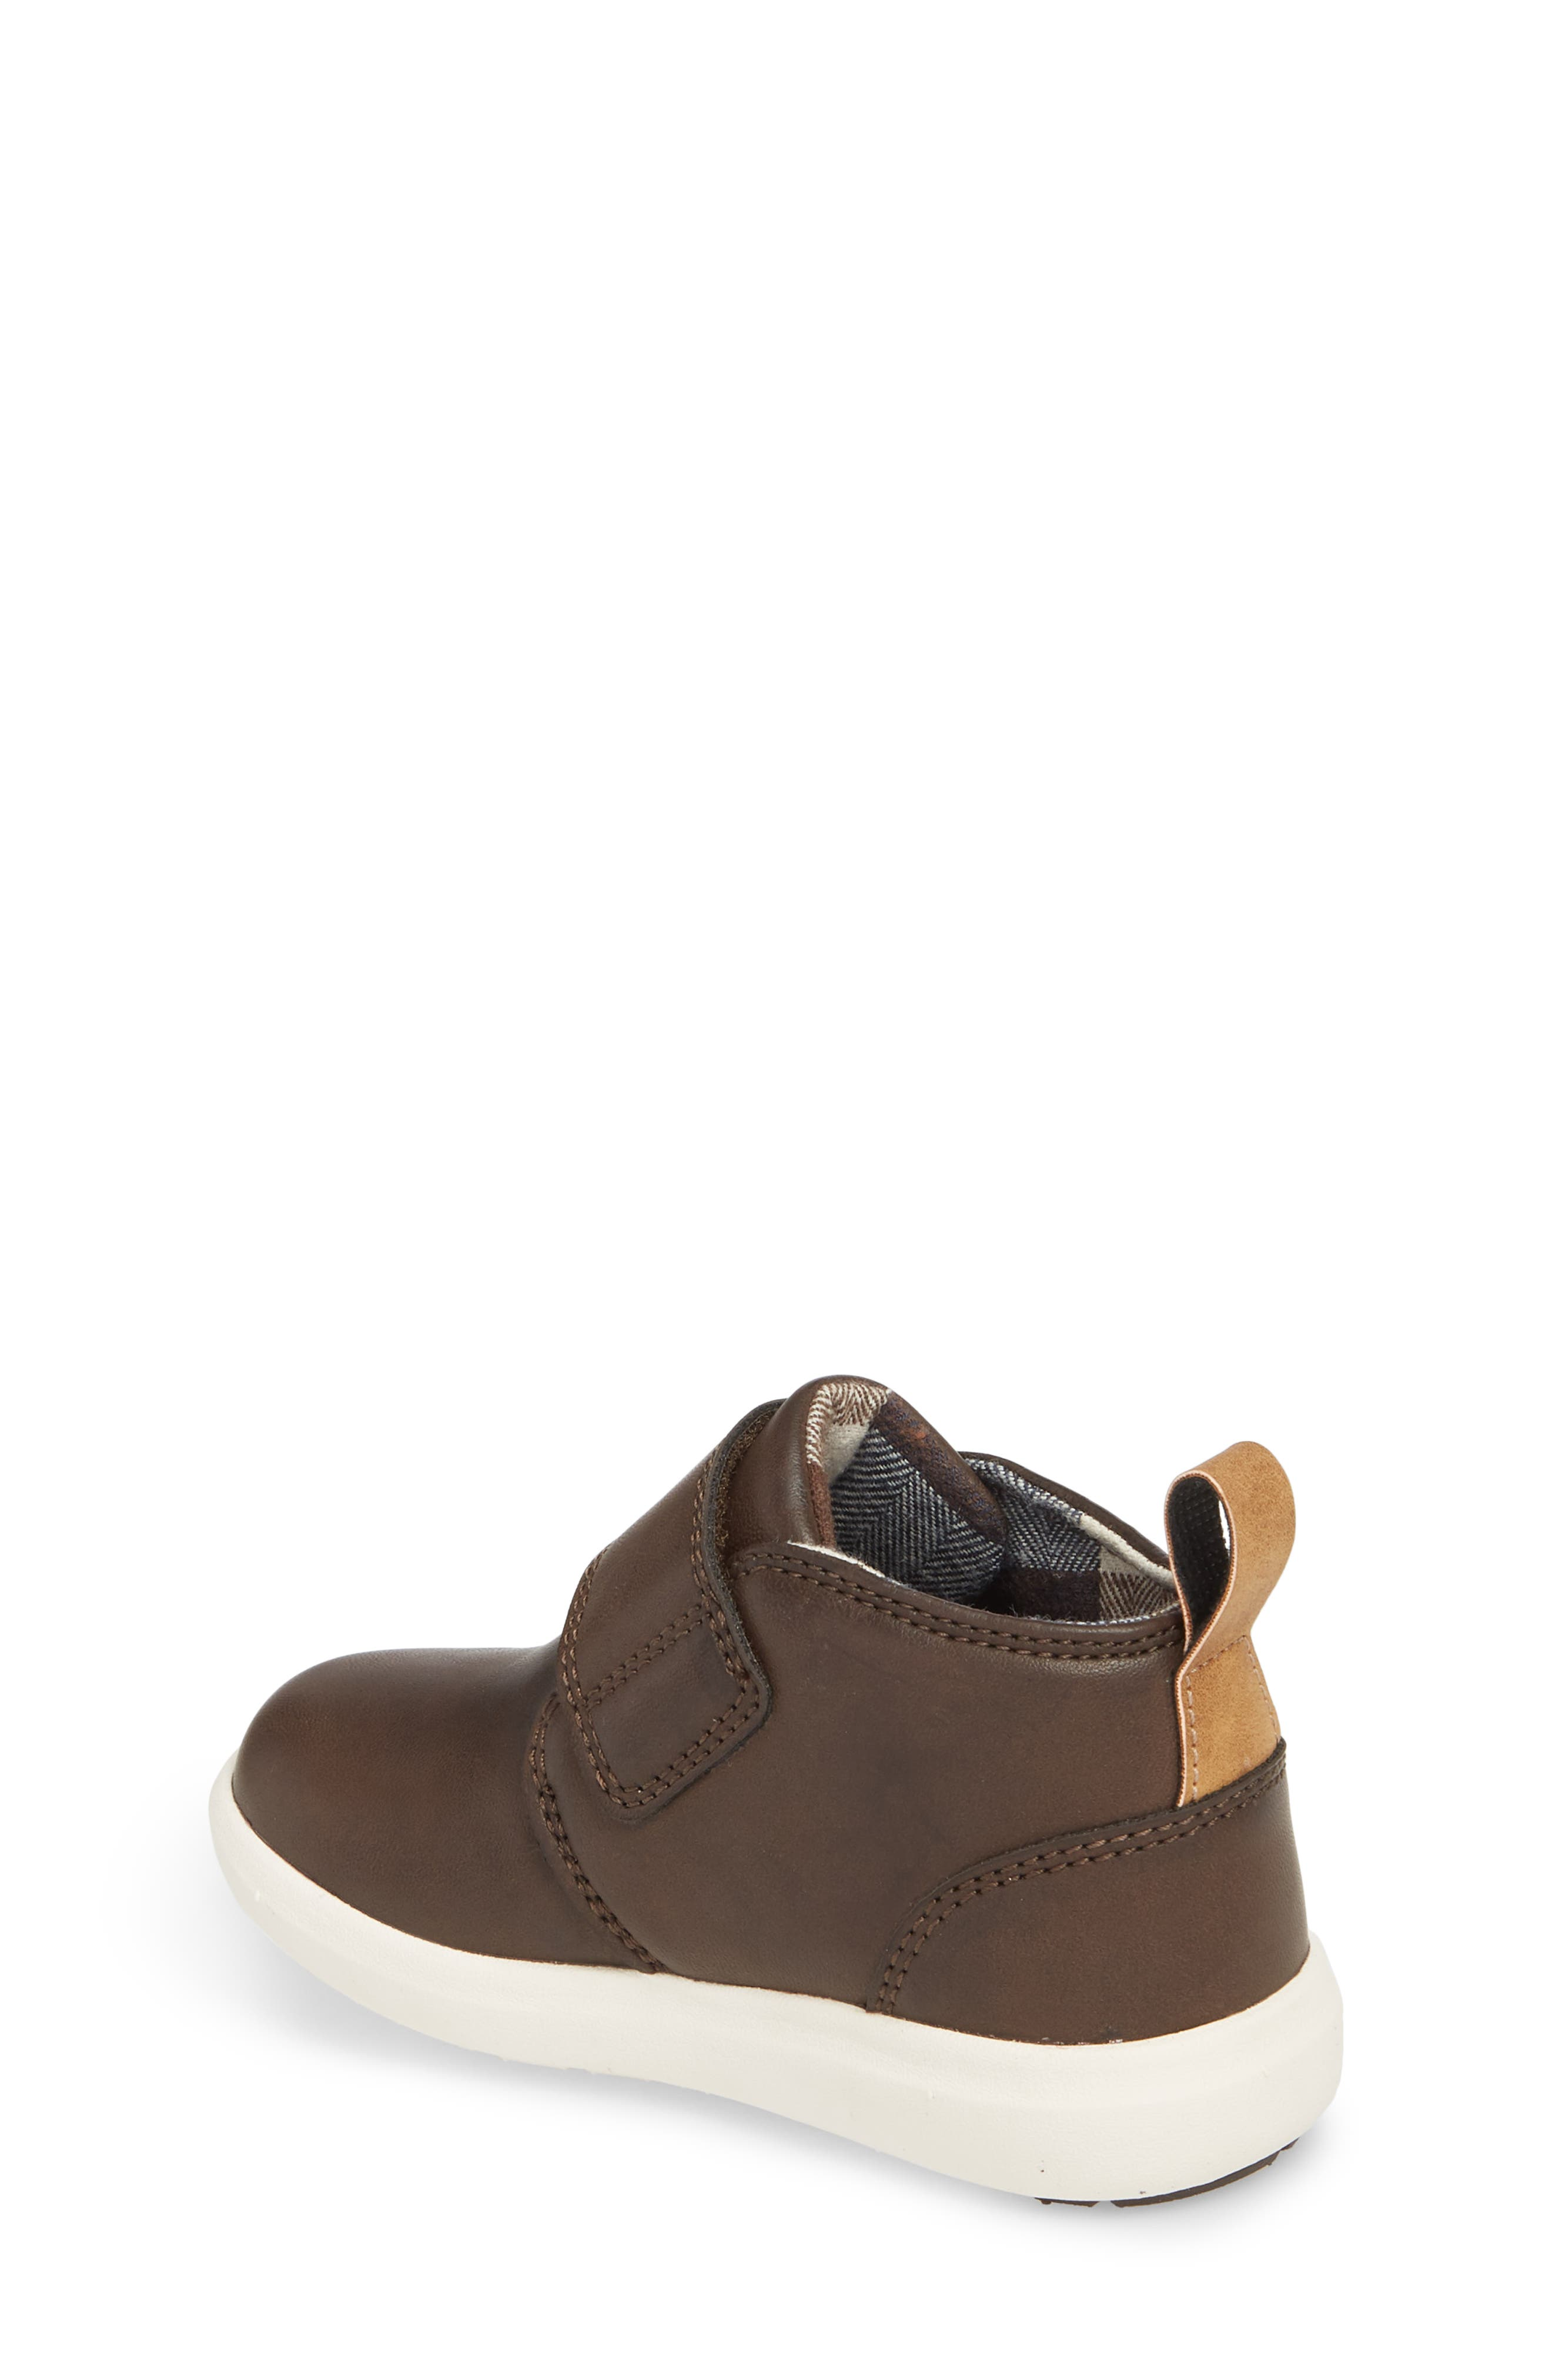 Oliver Low Bootie Sneaker,                             Alternate thumbnail 2, color,                             CHOCOLATE FAUX LEATHER